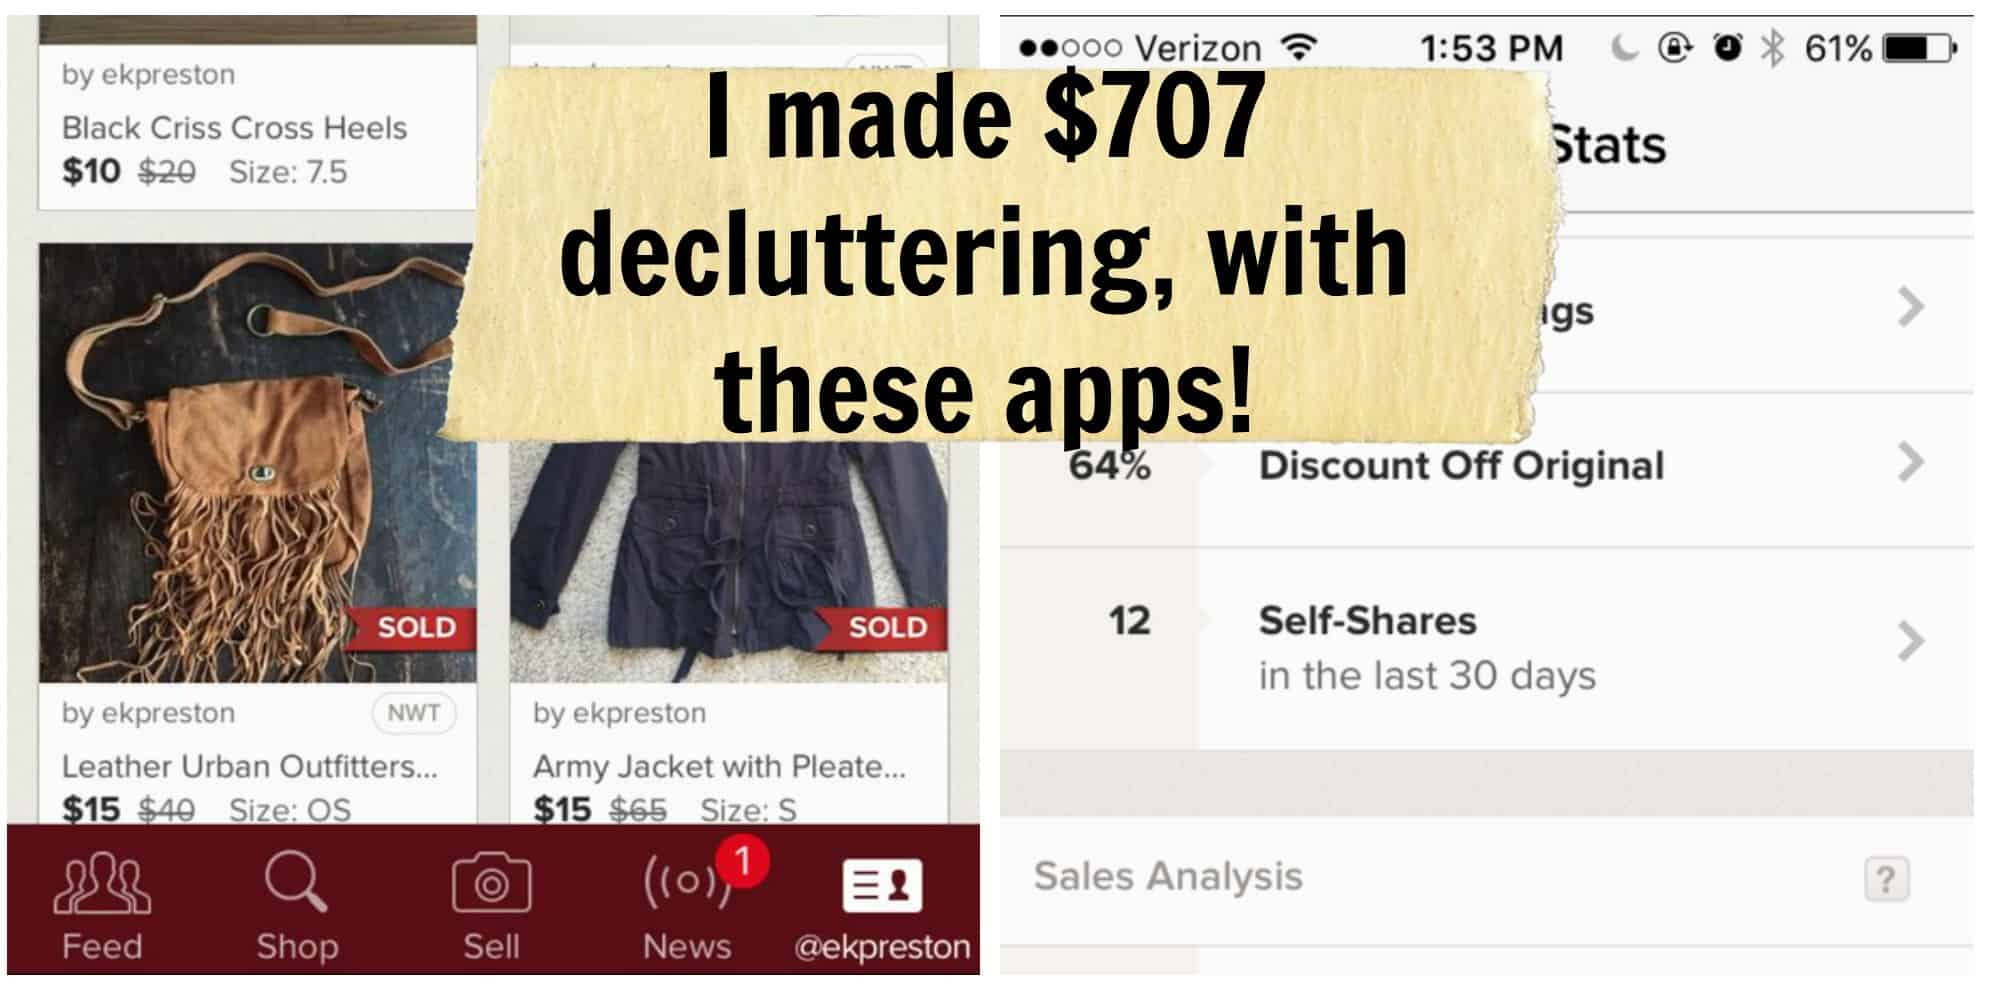 i-made-707-decluttering-with-these-apps